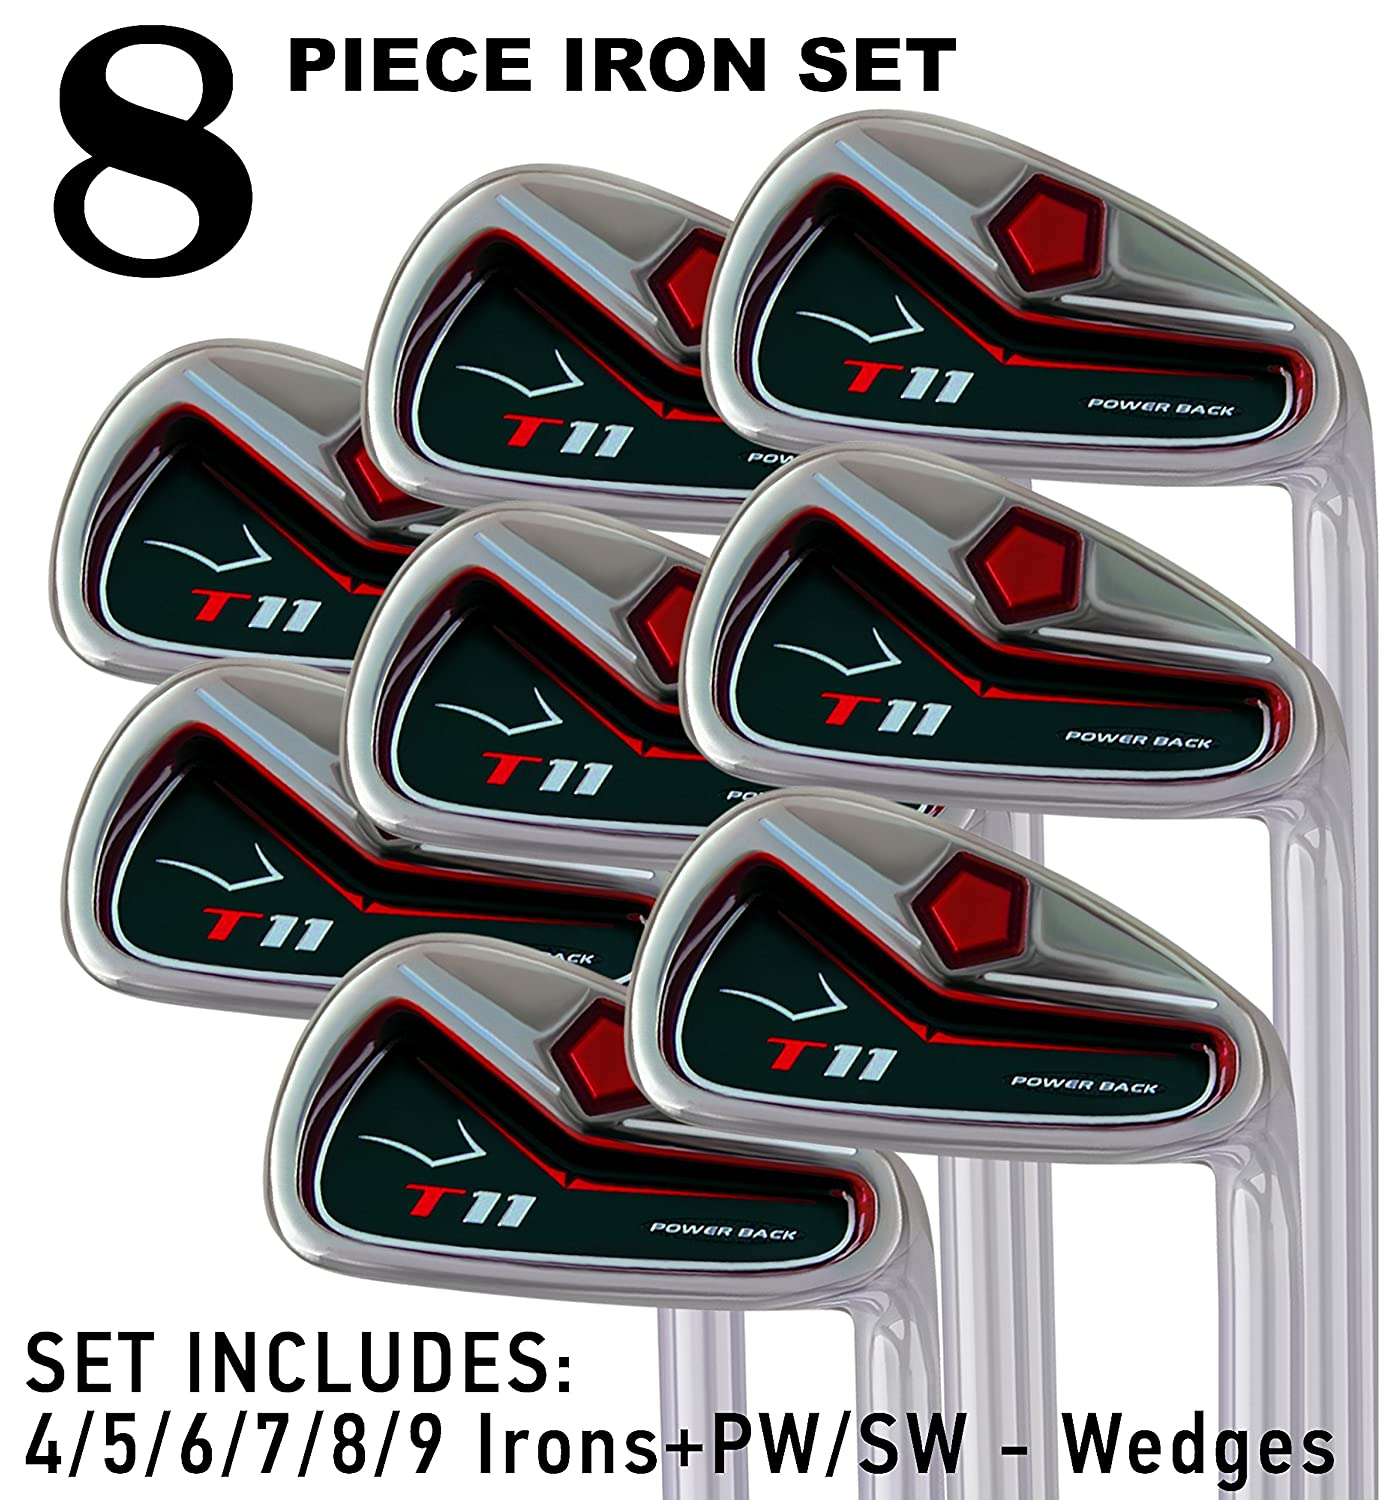 T11 Power Back Iron Set 4-SW Custom Made Golf Clubs Right Hand Regular R Flex Steel Shafts Mens Standard Irons